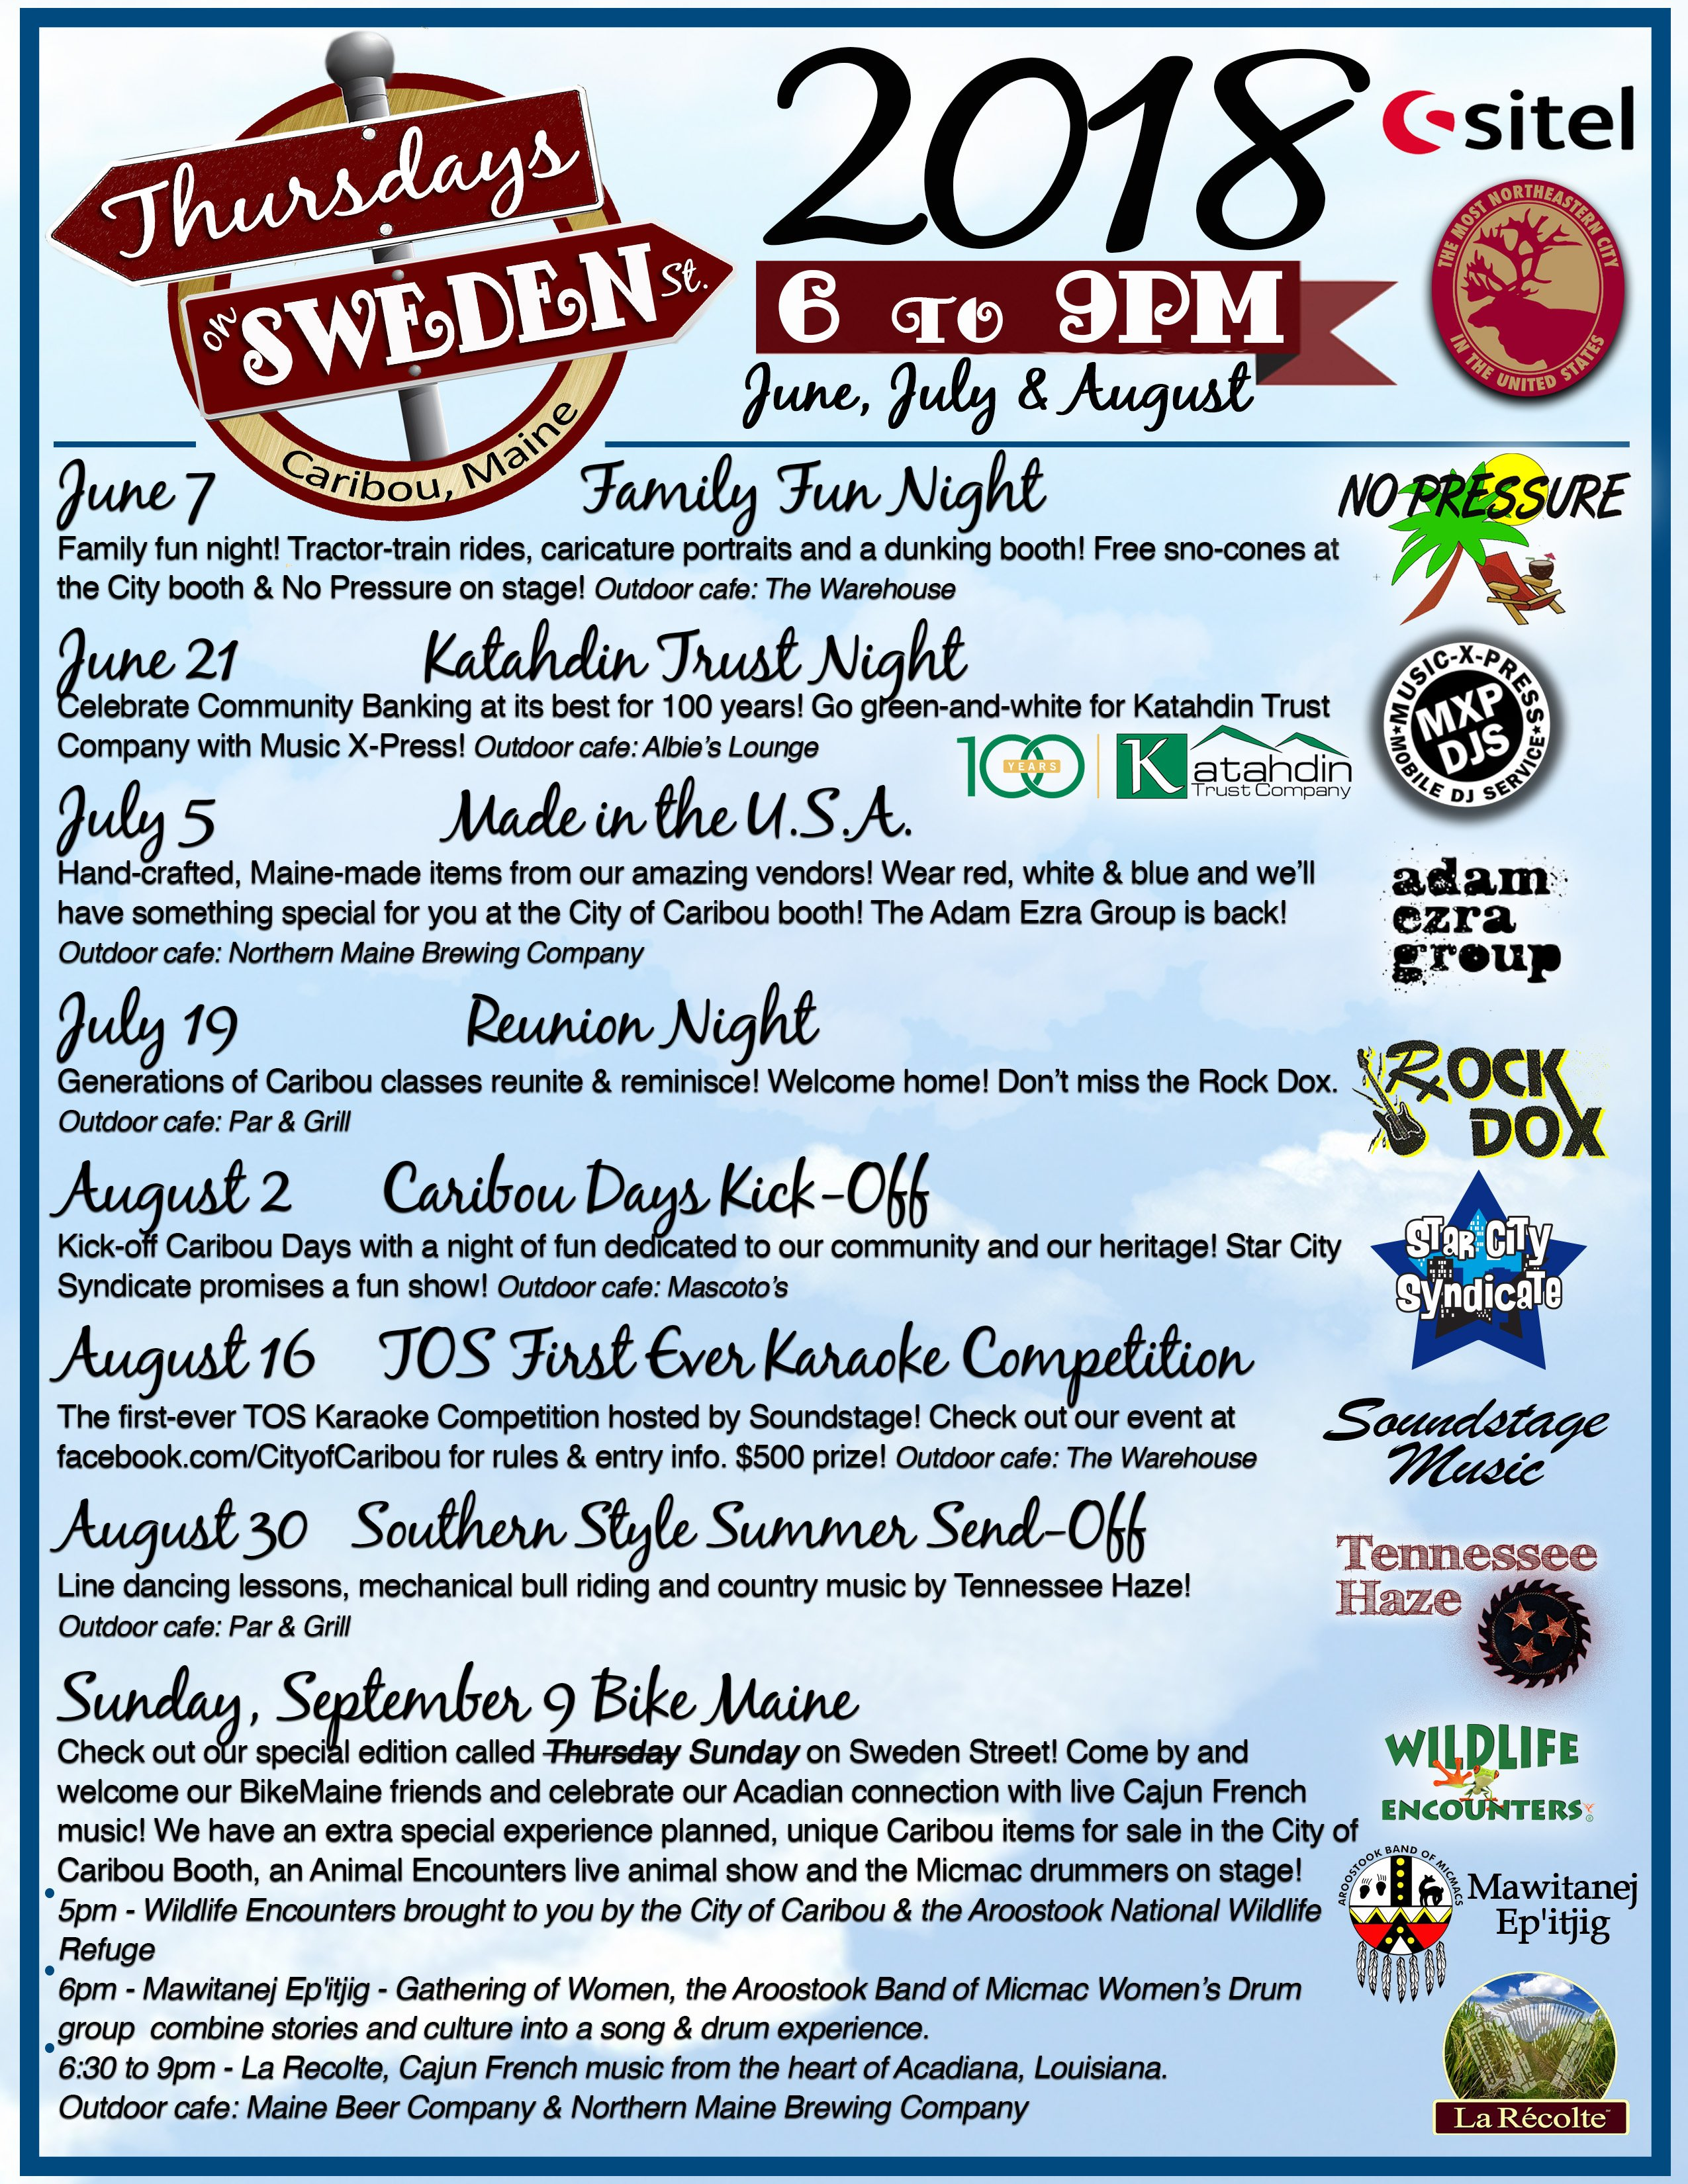 Join us for our popular summer festival - Thursdays on Sweden Street! On June 7, help us kick off the series with Family Fun Night - Tractor-Train Rides, Dunking Booth, Sno-Cones and more!